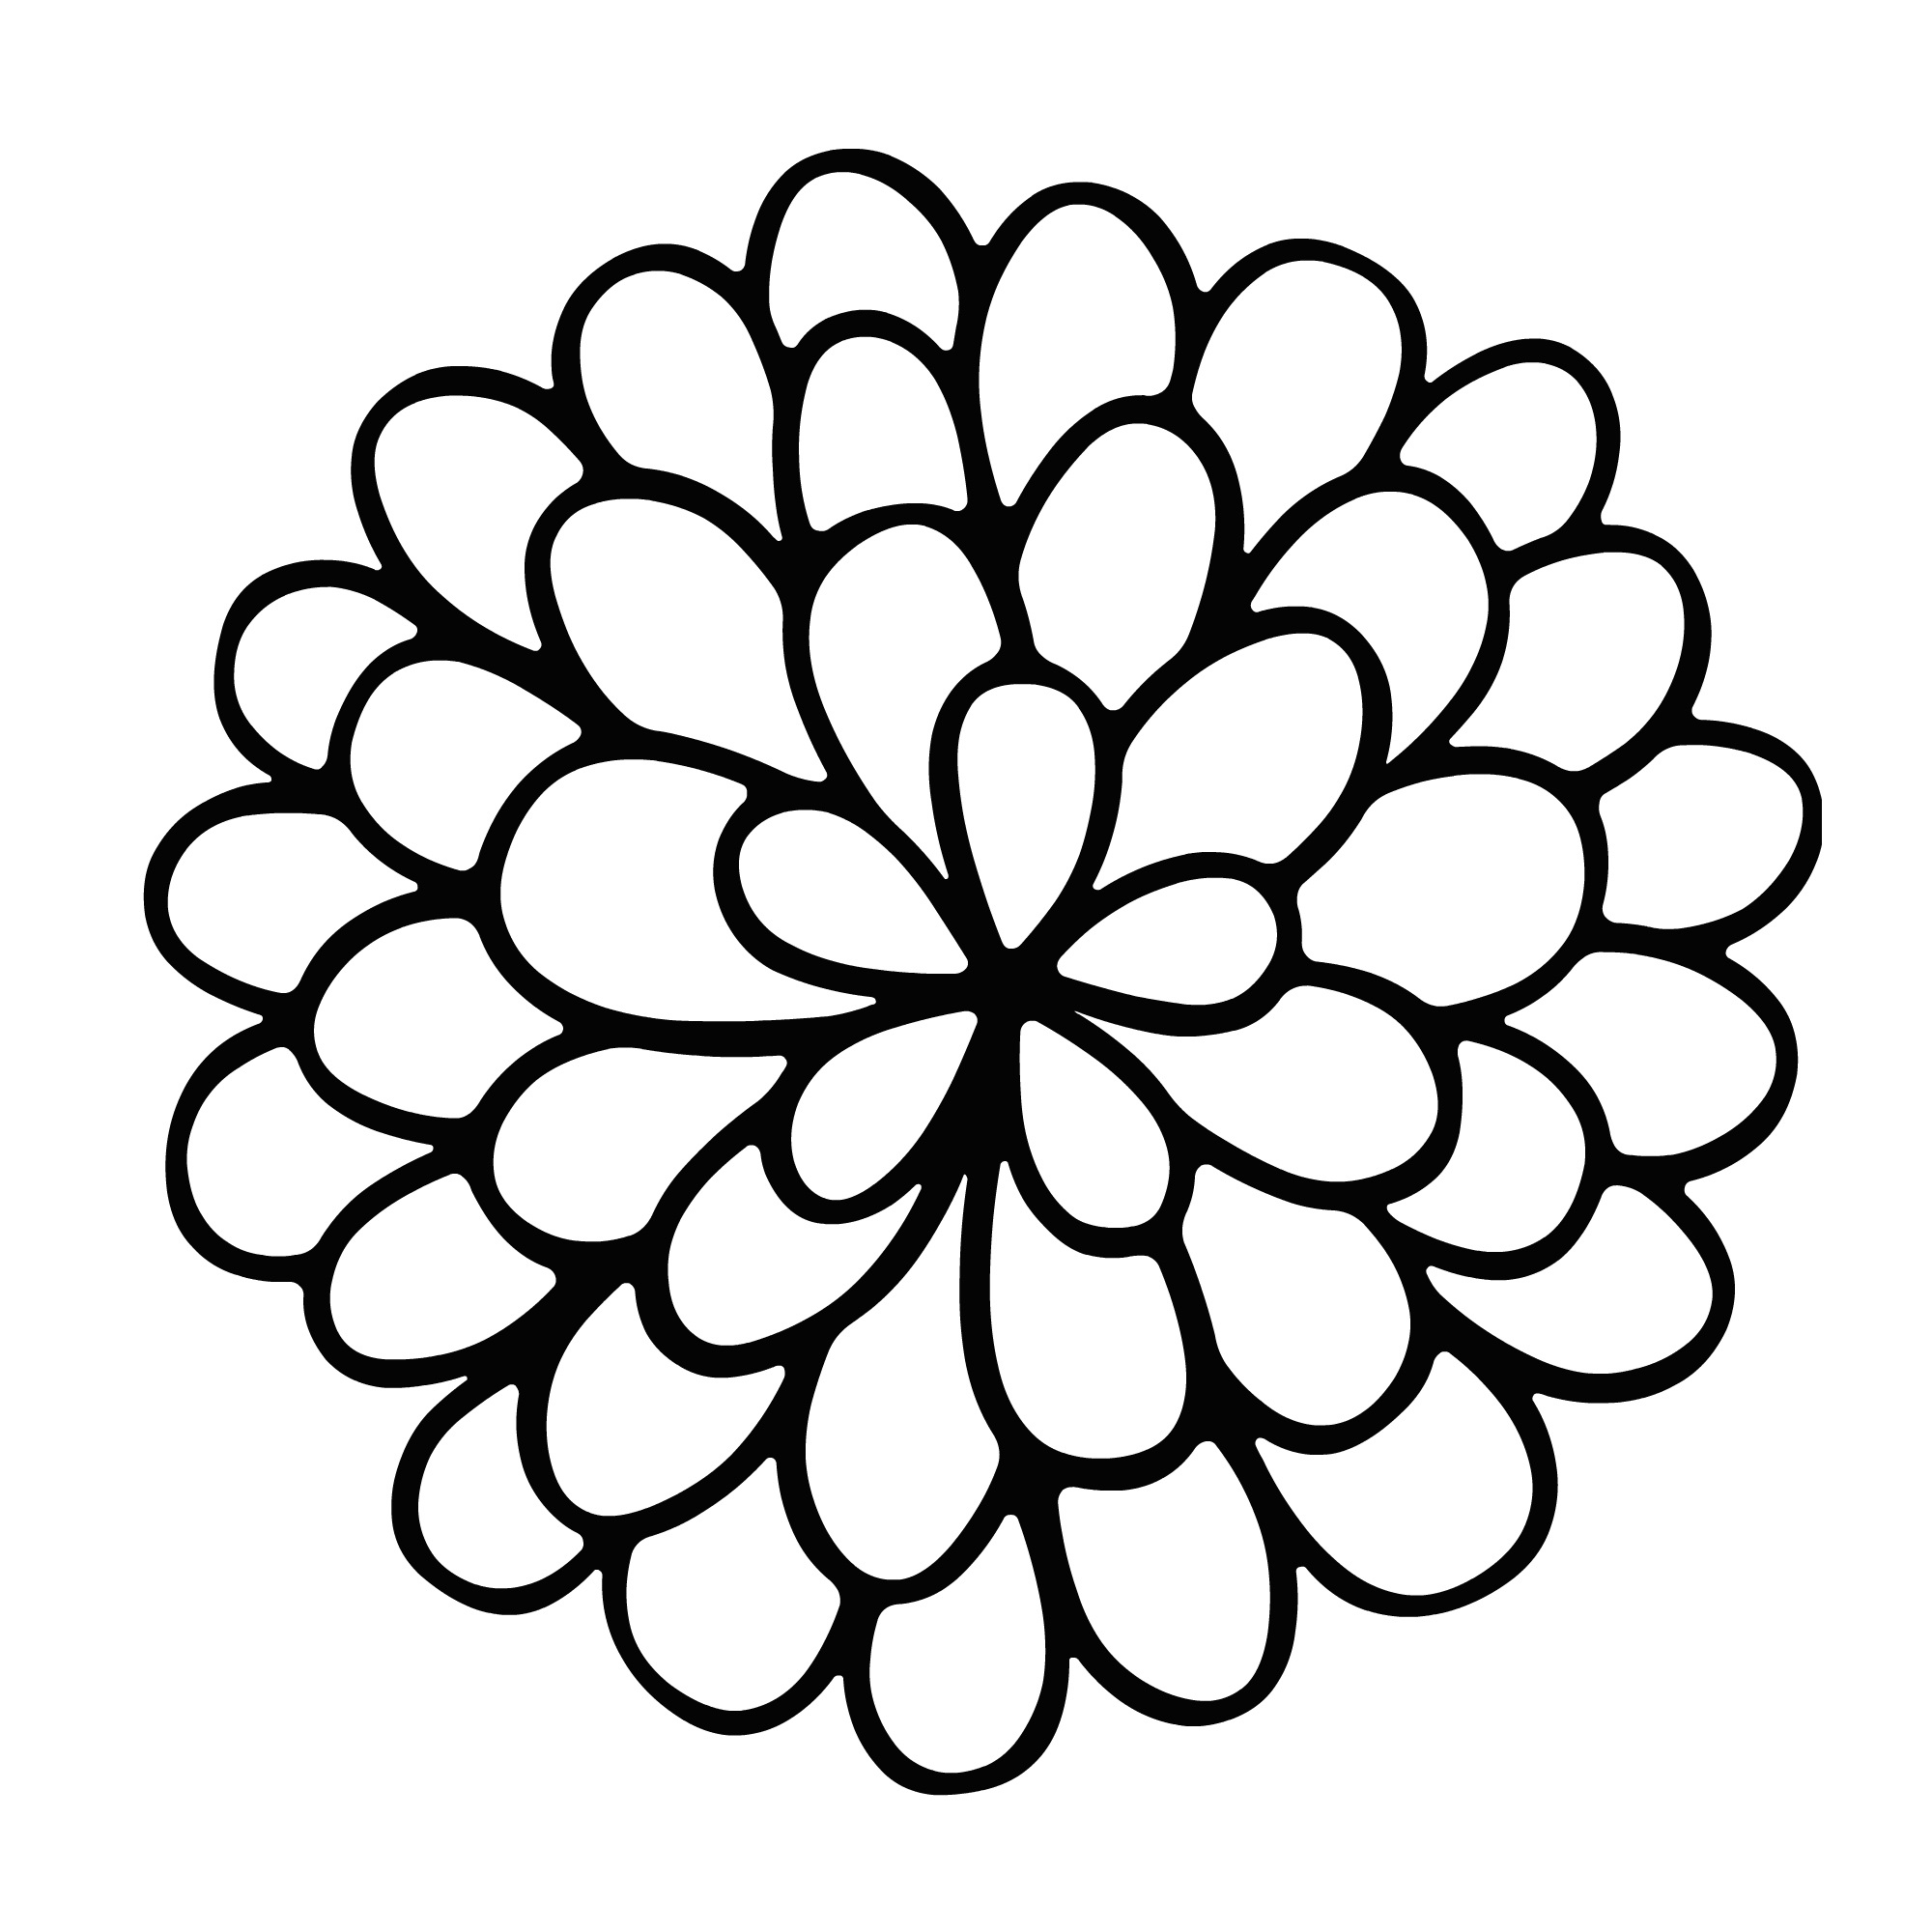 2000x2000 Marigold Flower Drawing Easy Sketch Coloring Page Art Lessons